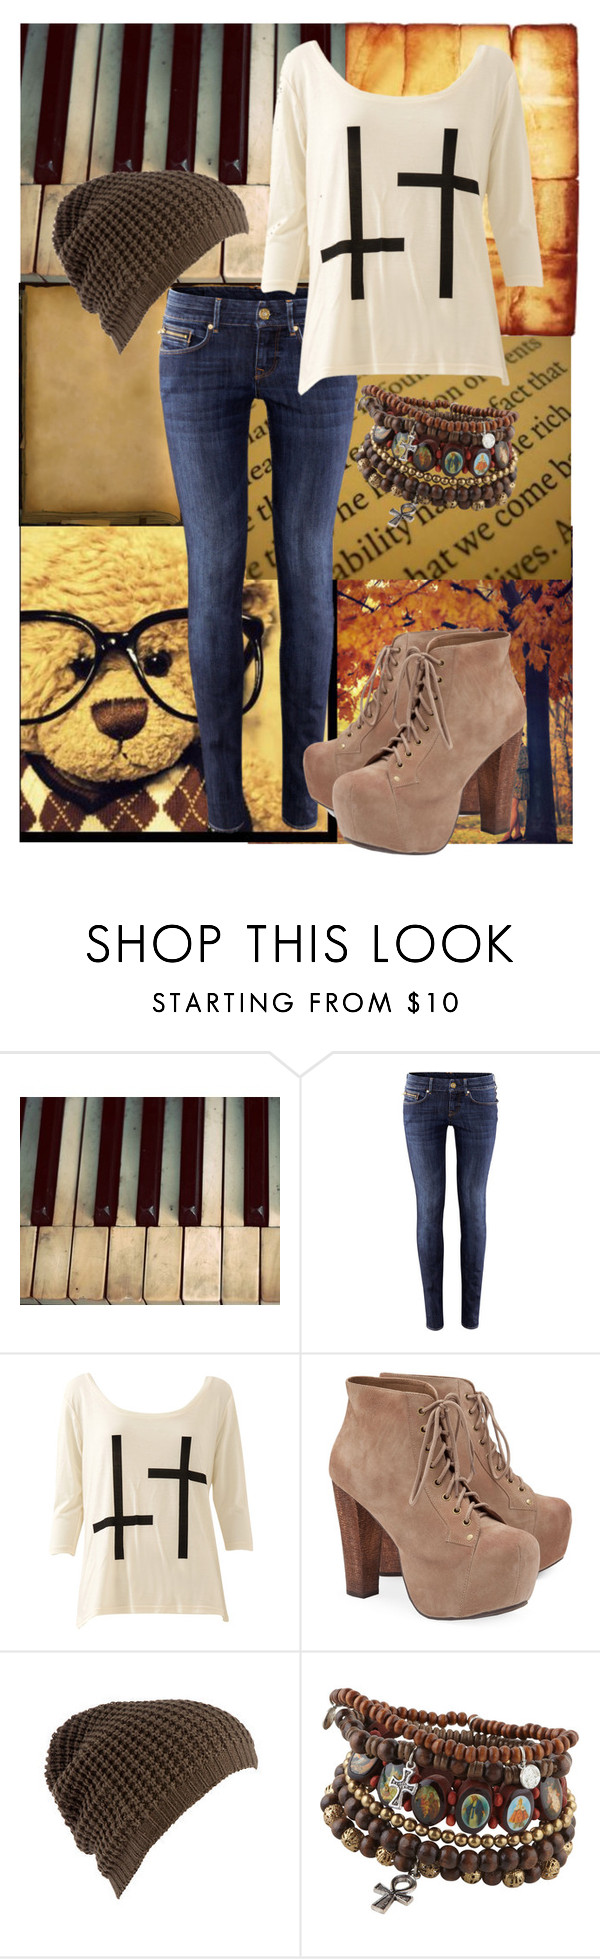 """""""Chapter 40"""" by superlycharlie ❤ liked on Polyvore featuring H&M, Jeffrey Campbell and ALDO"""